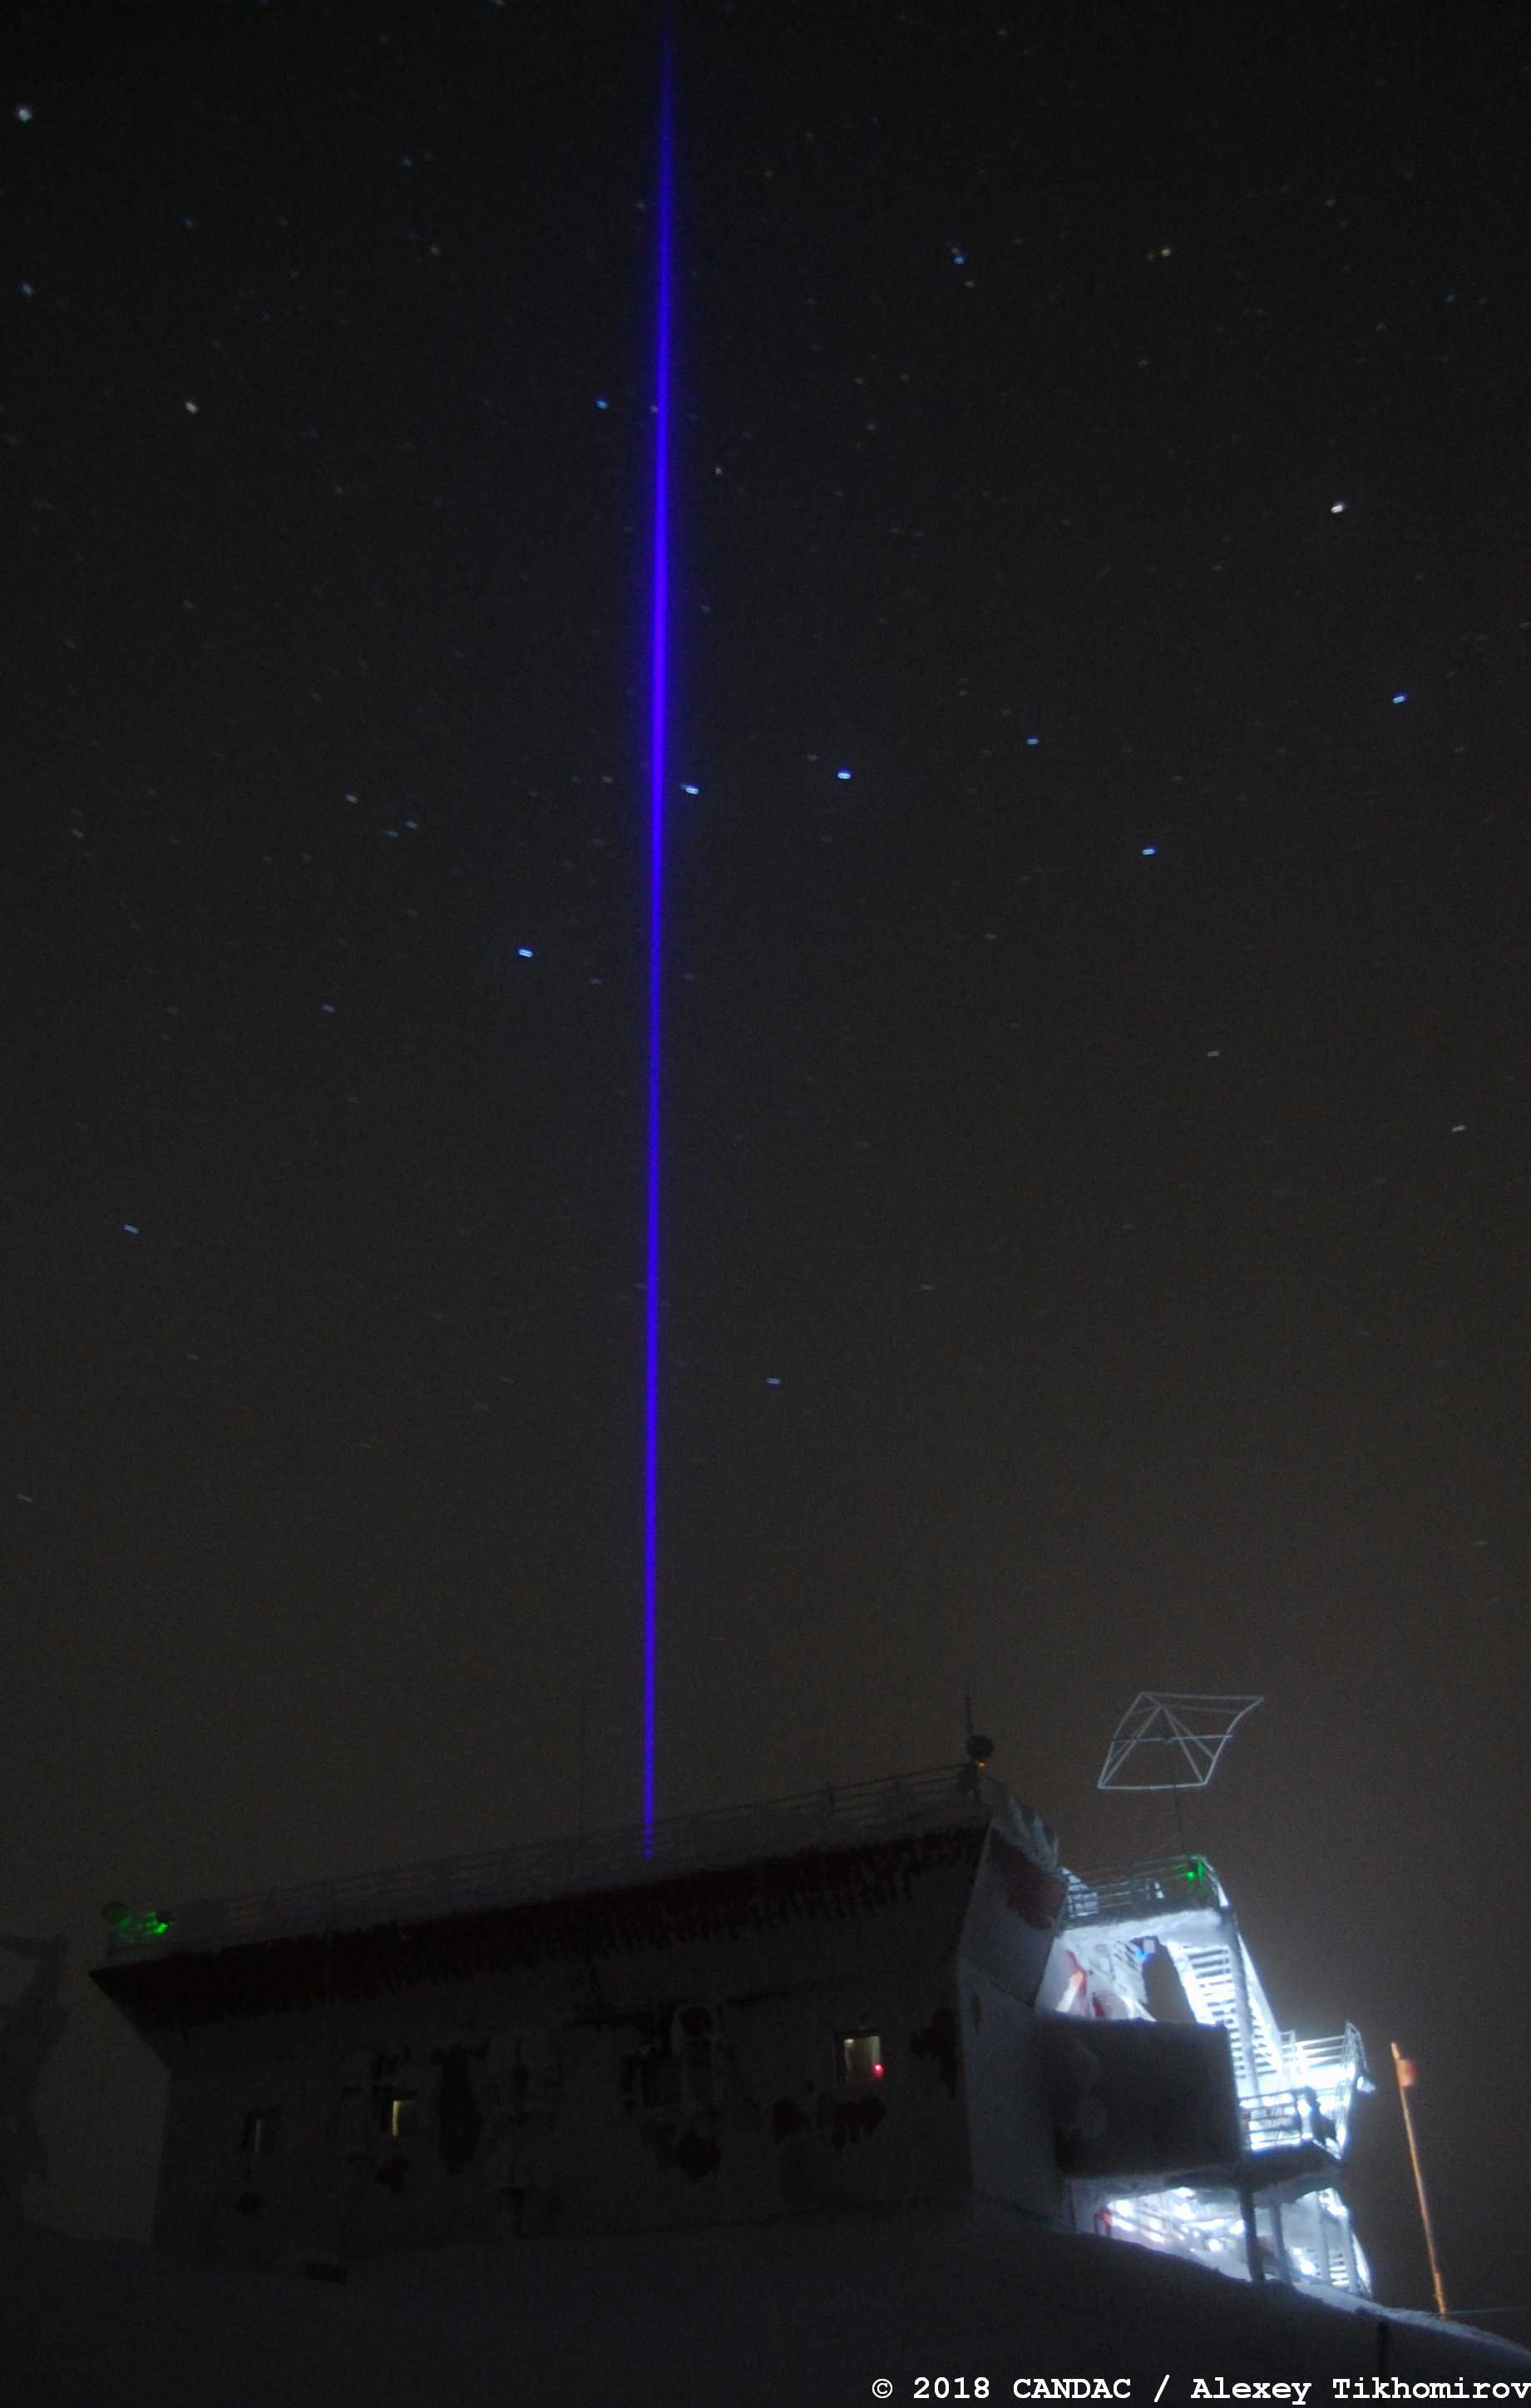 SOLID in operation on November 5, 2018. The laser beam is passing through a thin cloud over the PEARL Ridgelab.